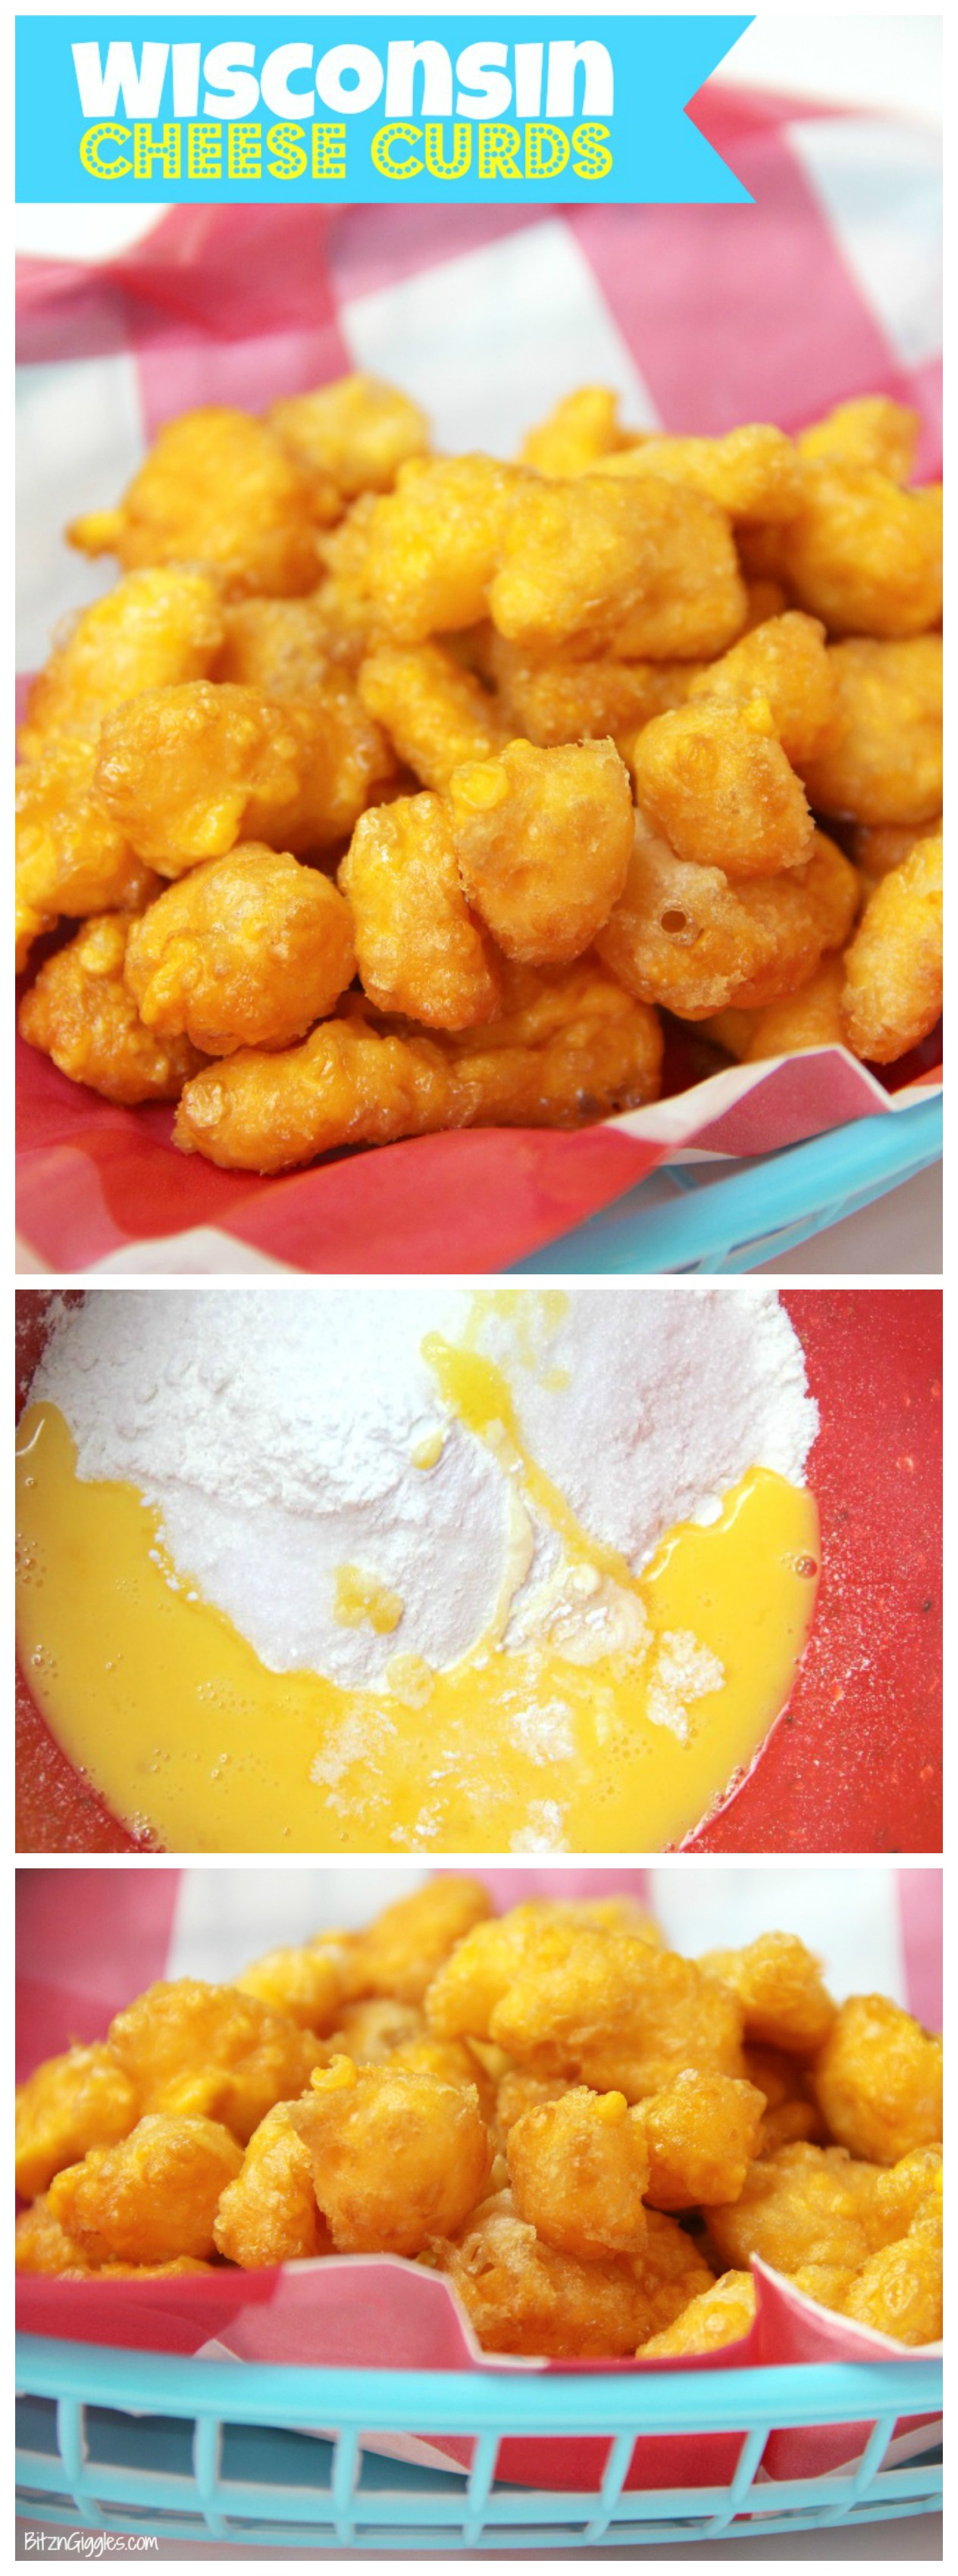 Can you freeze wisconsin cheese curds